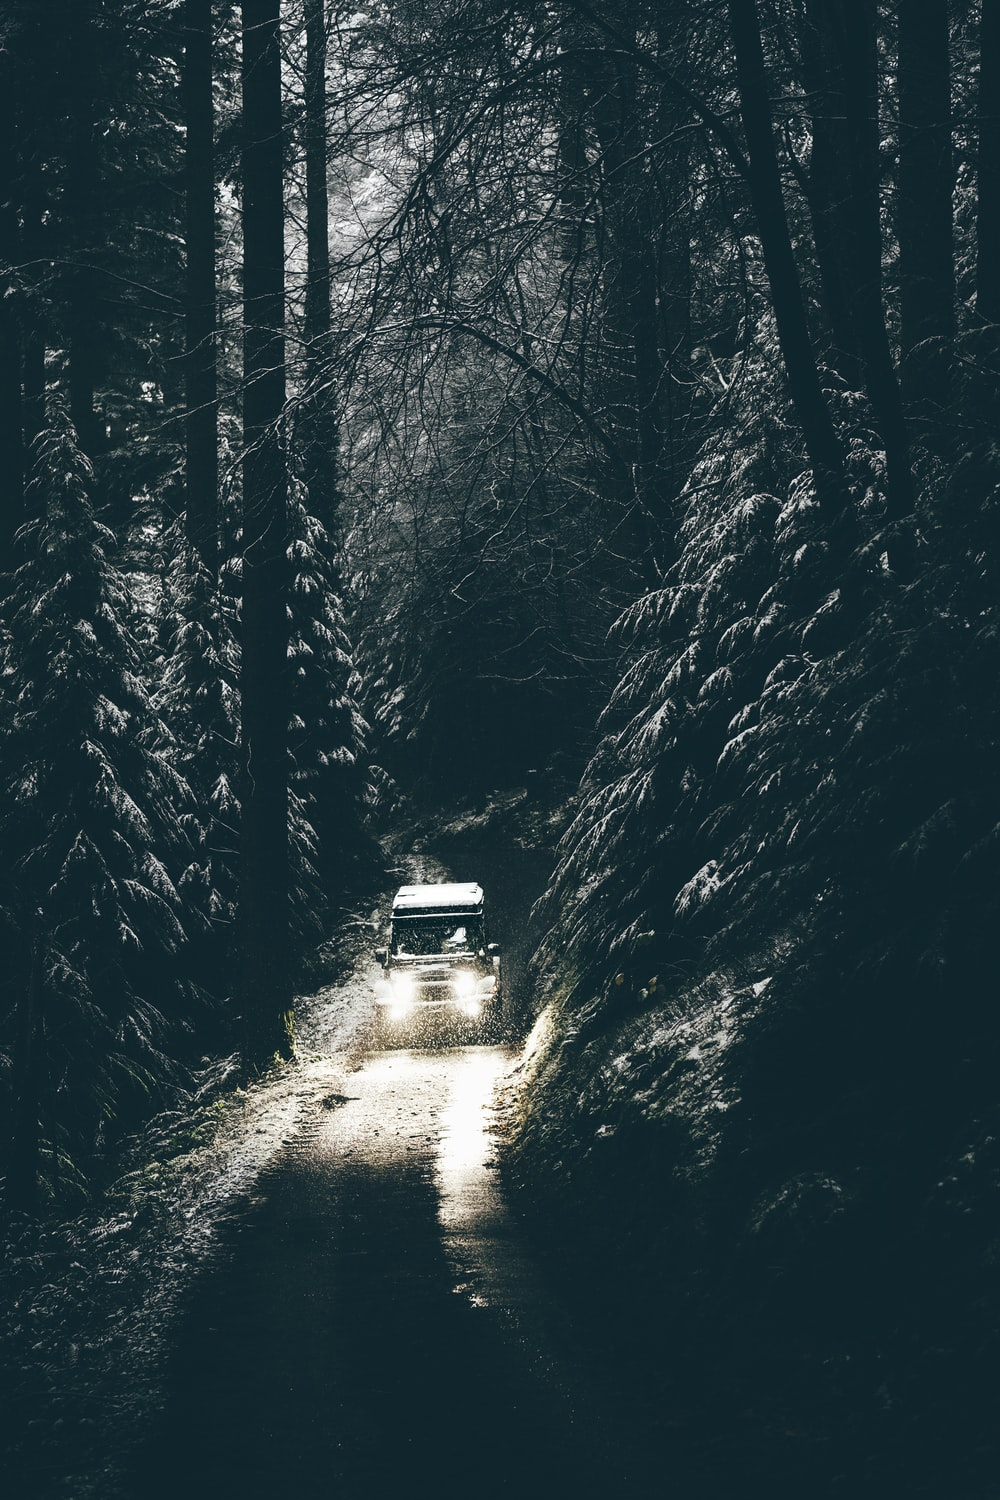 grayscale photo of vehicle between trees